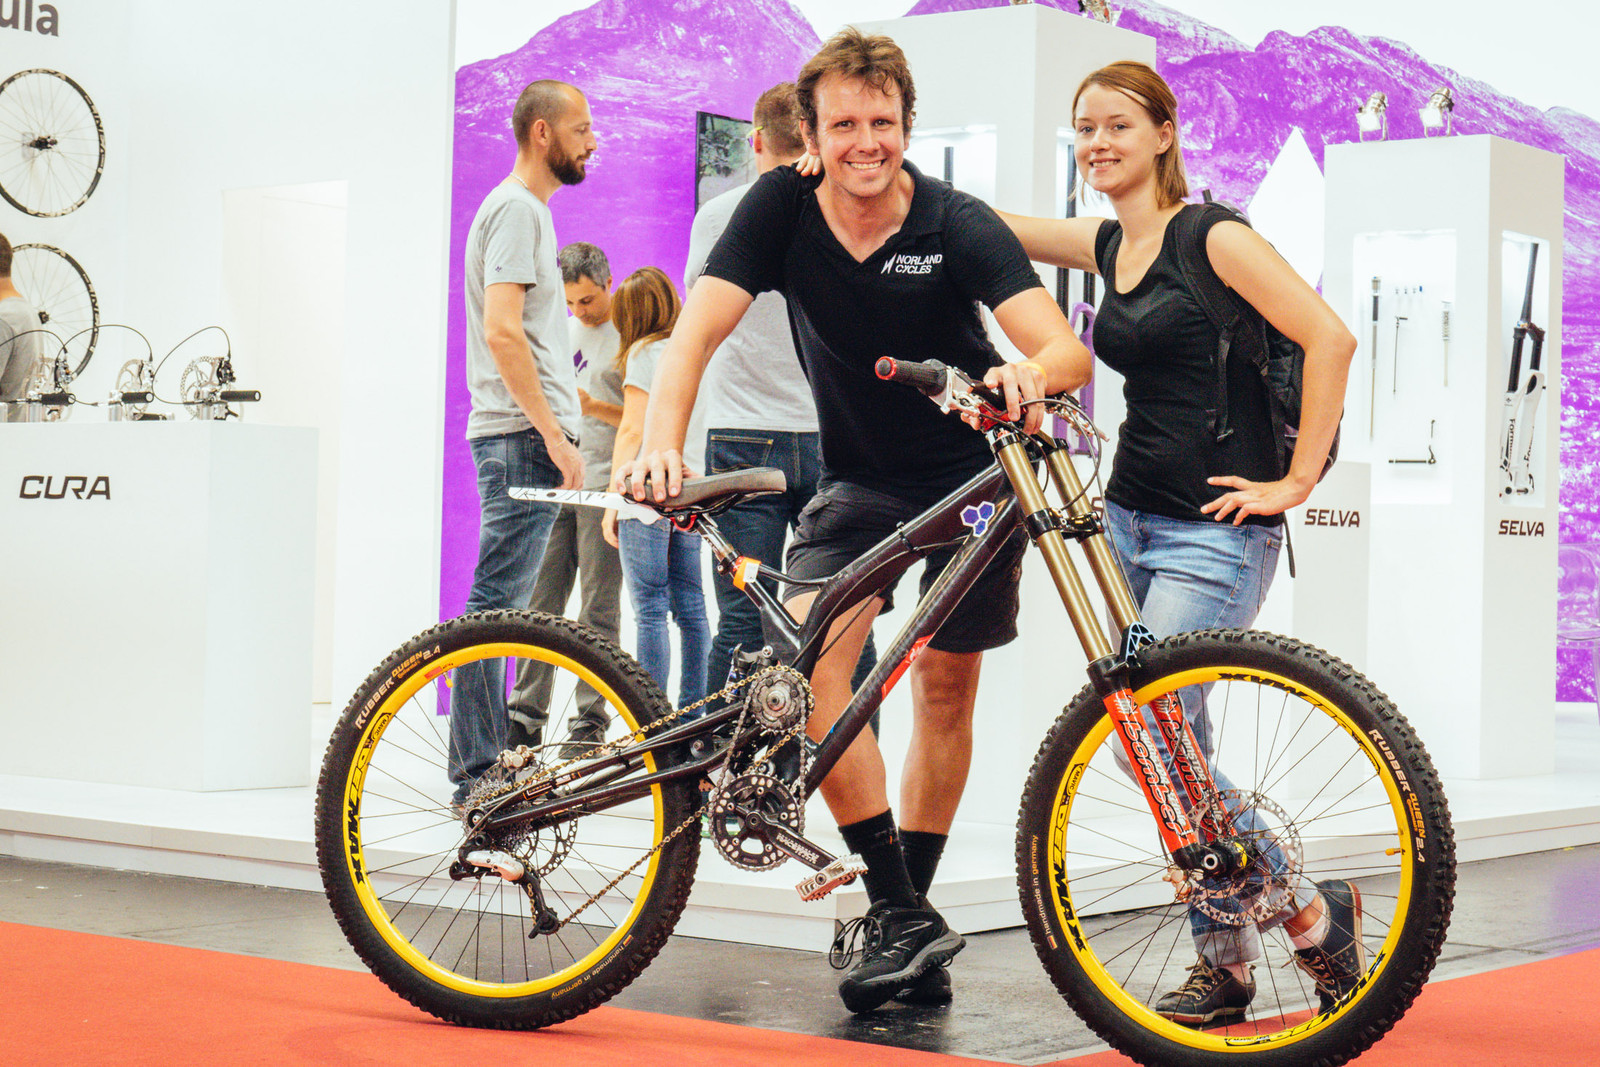 Norland Cycles Blast from the Past - EUROBIKE - 2017 Downhill Bikes and Gear - Mountain Biking Pictures - Vital MTB